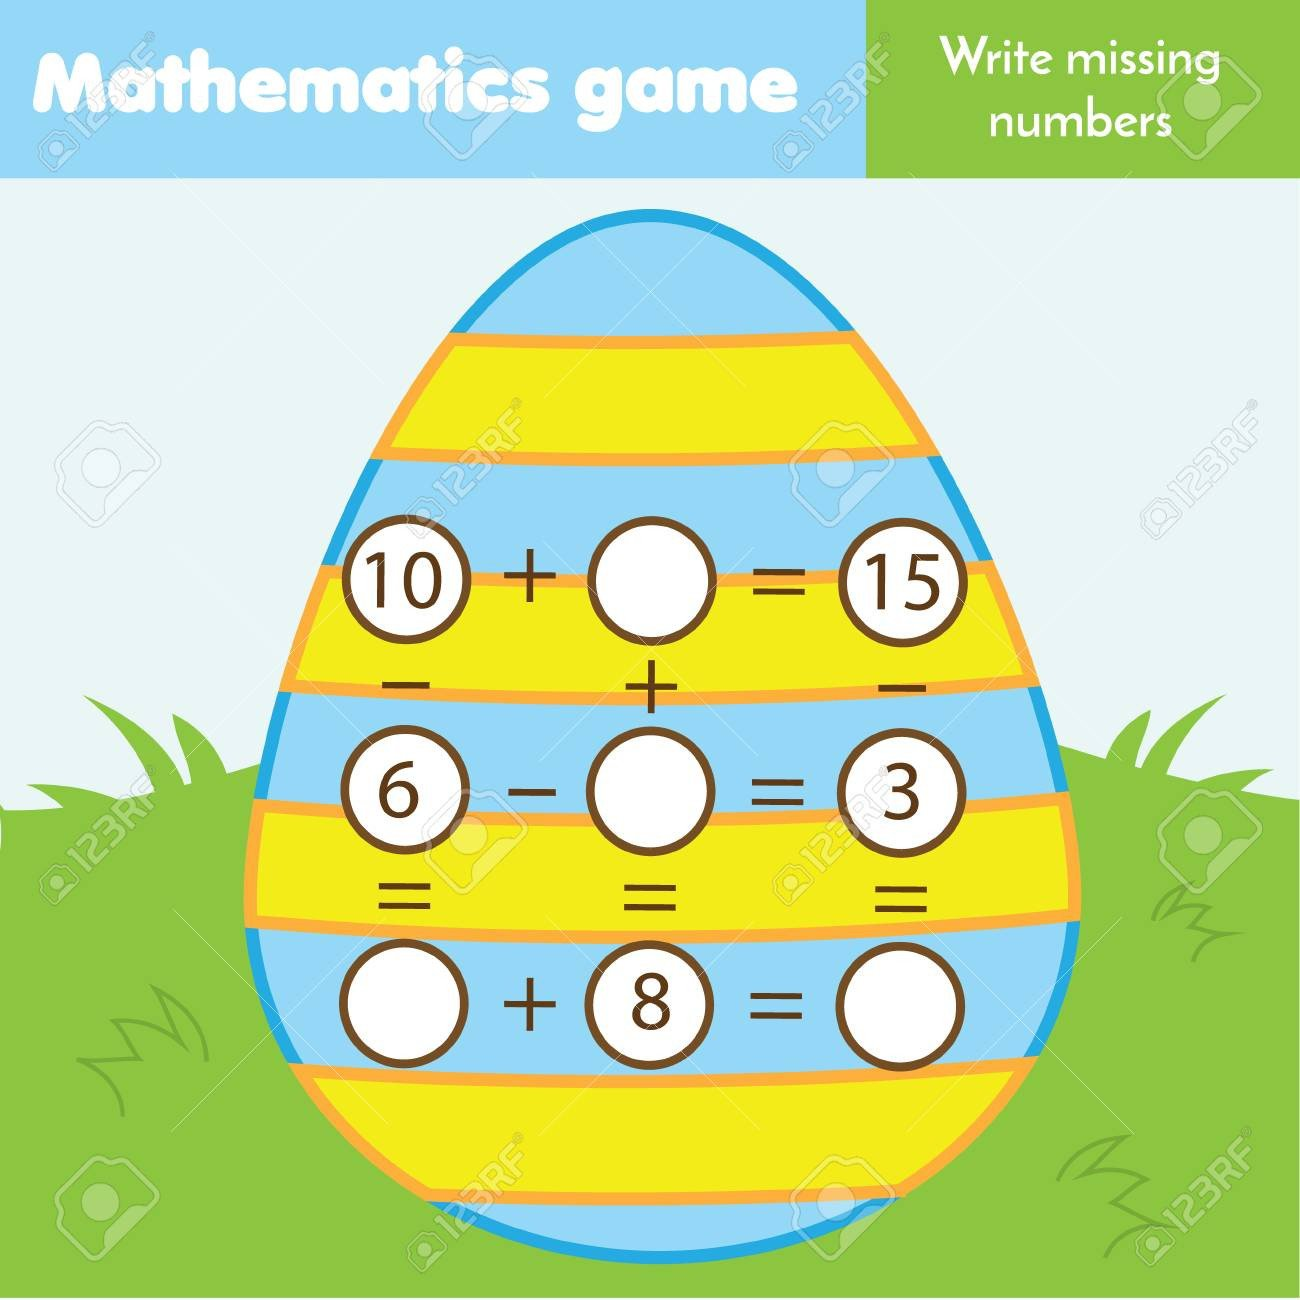 Missing Numbers In Equations Worksheets Math Educational Game for Children Write Missing Numbers and